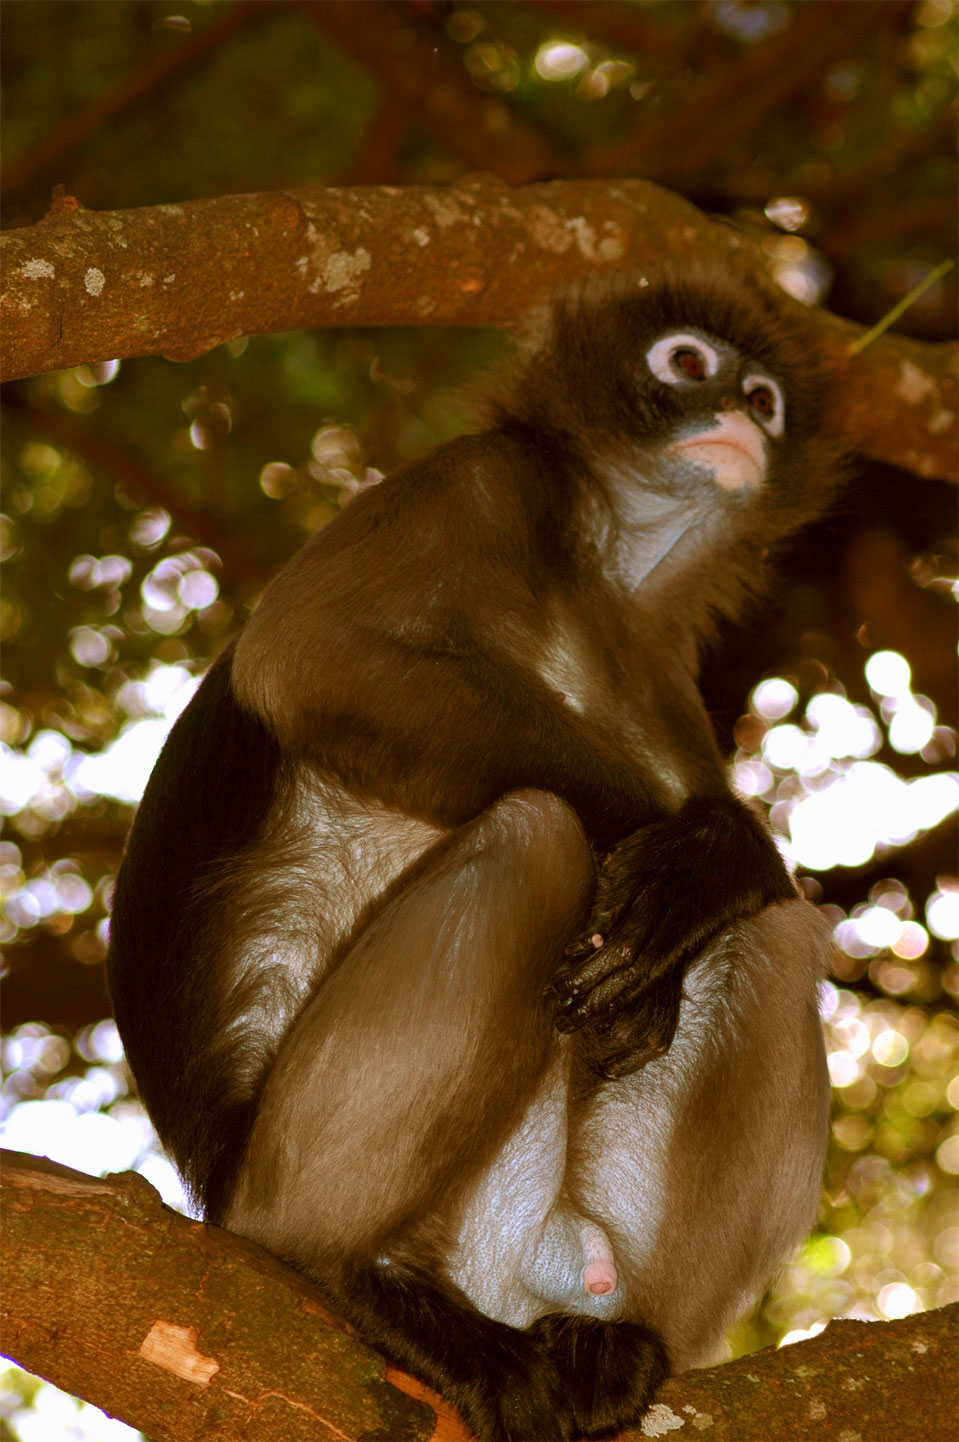 The spectacled langur (Trachypithecus obscurus).